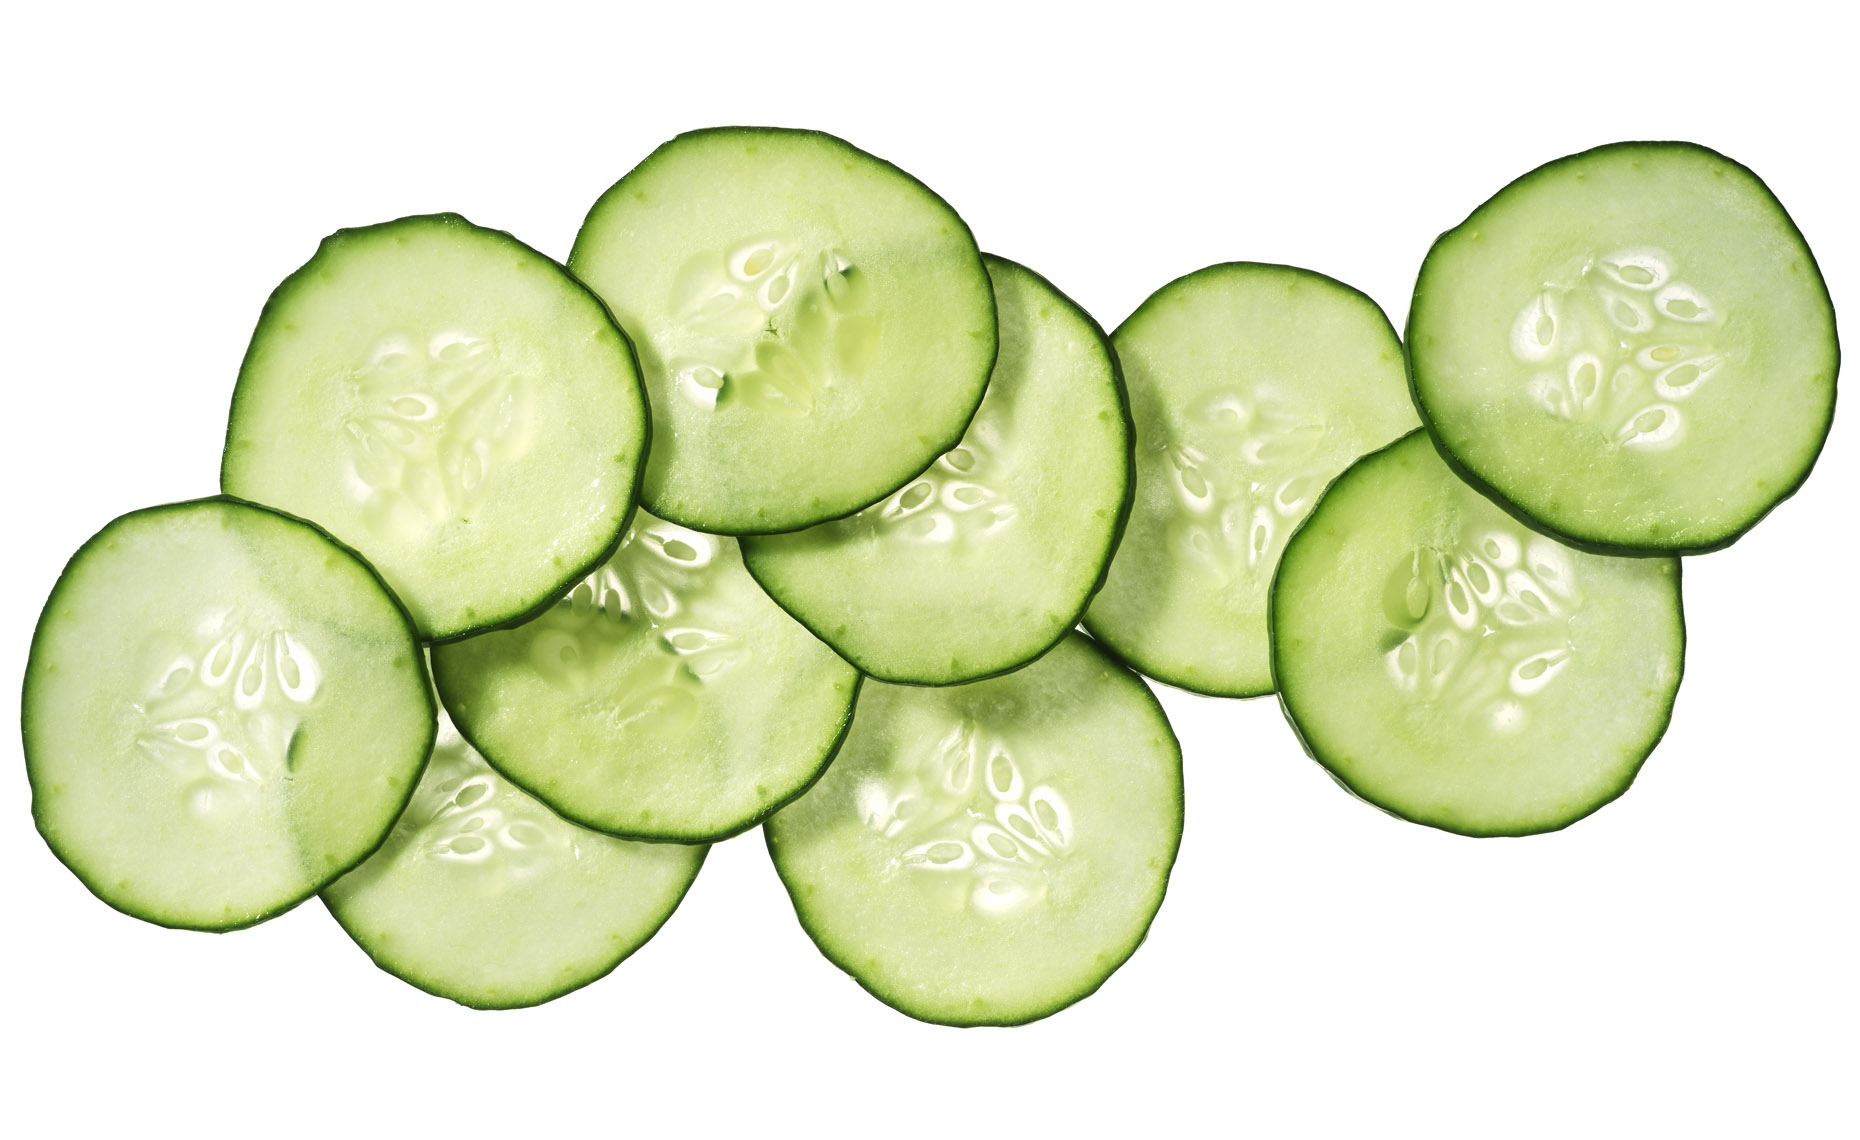 Food Still Life, Cucumber Slices - Gurken Scheiben